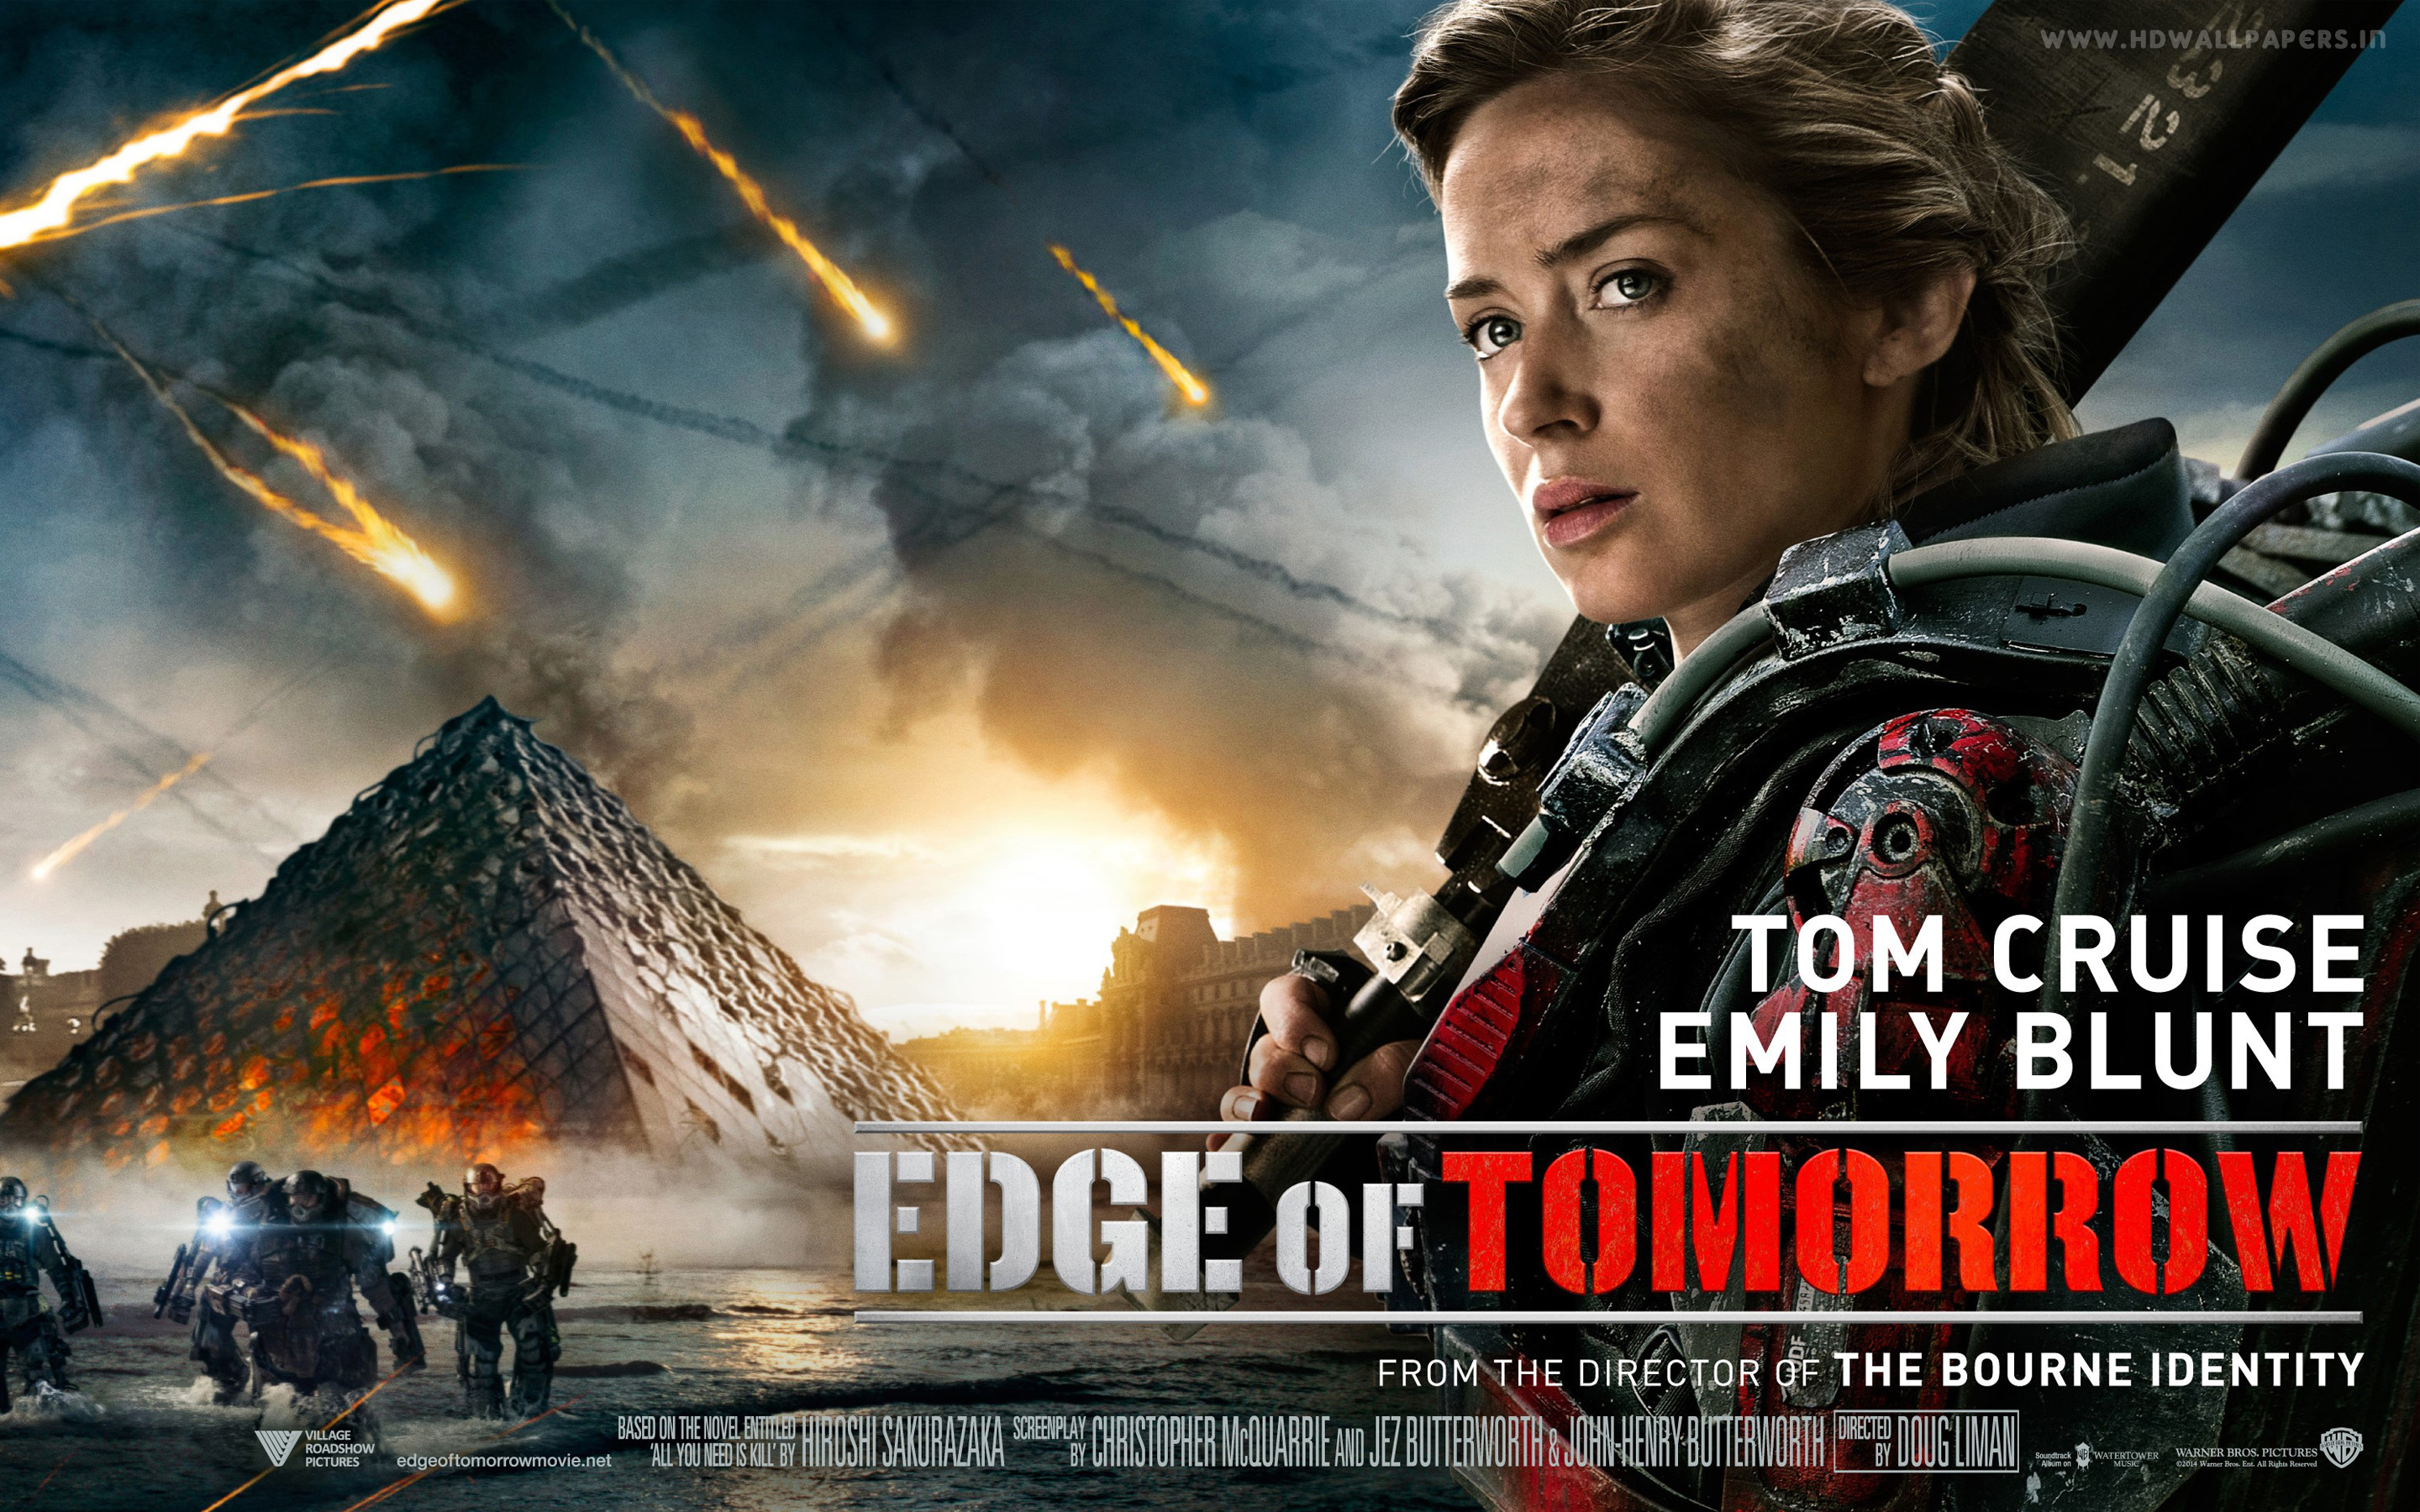 HD Wallpapers Emily Blunt in Edge of Tomorrow